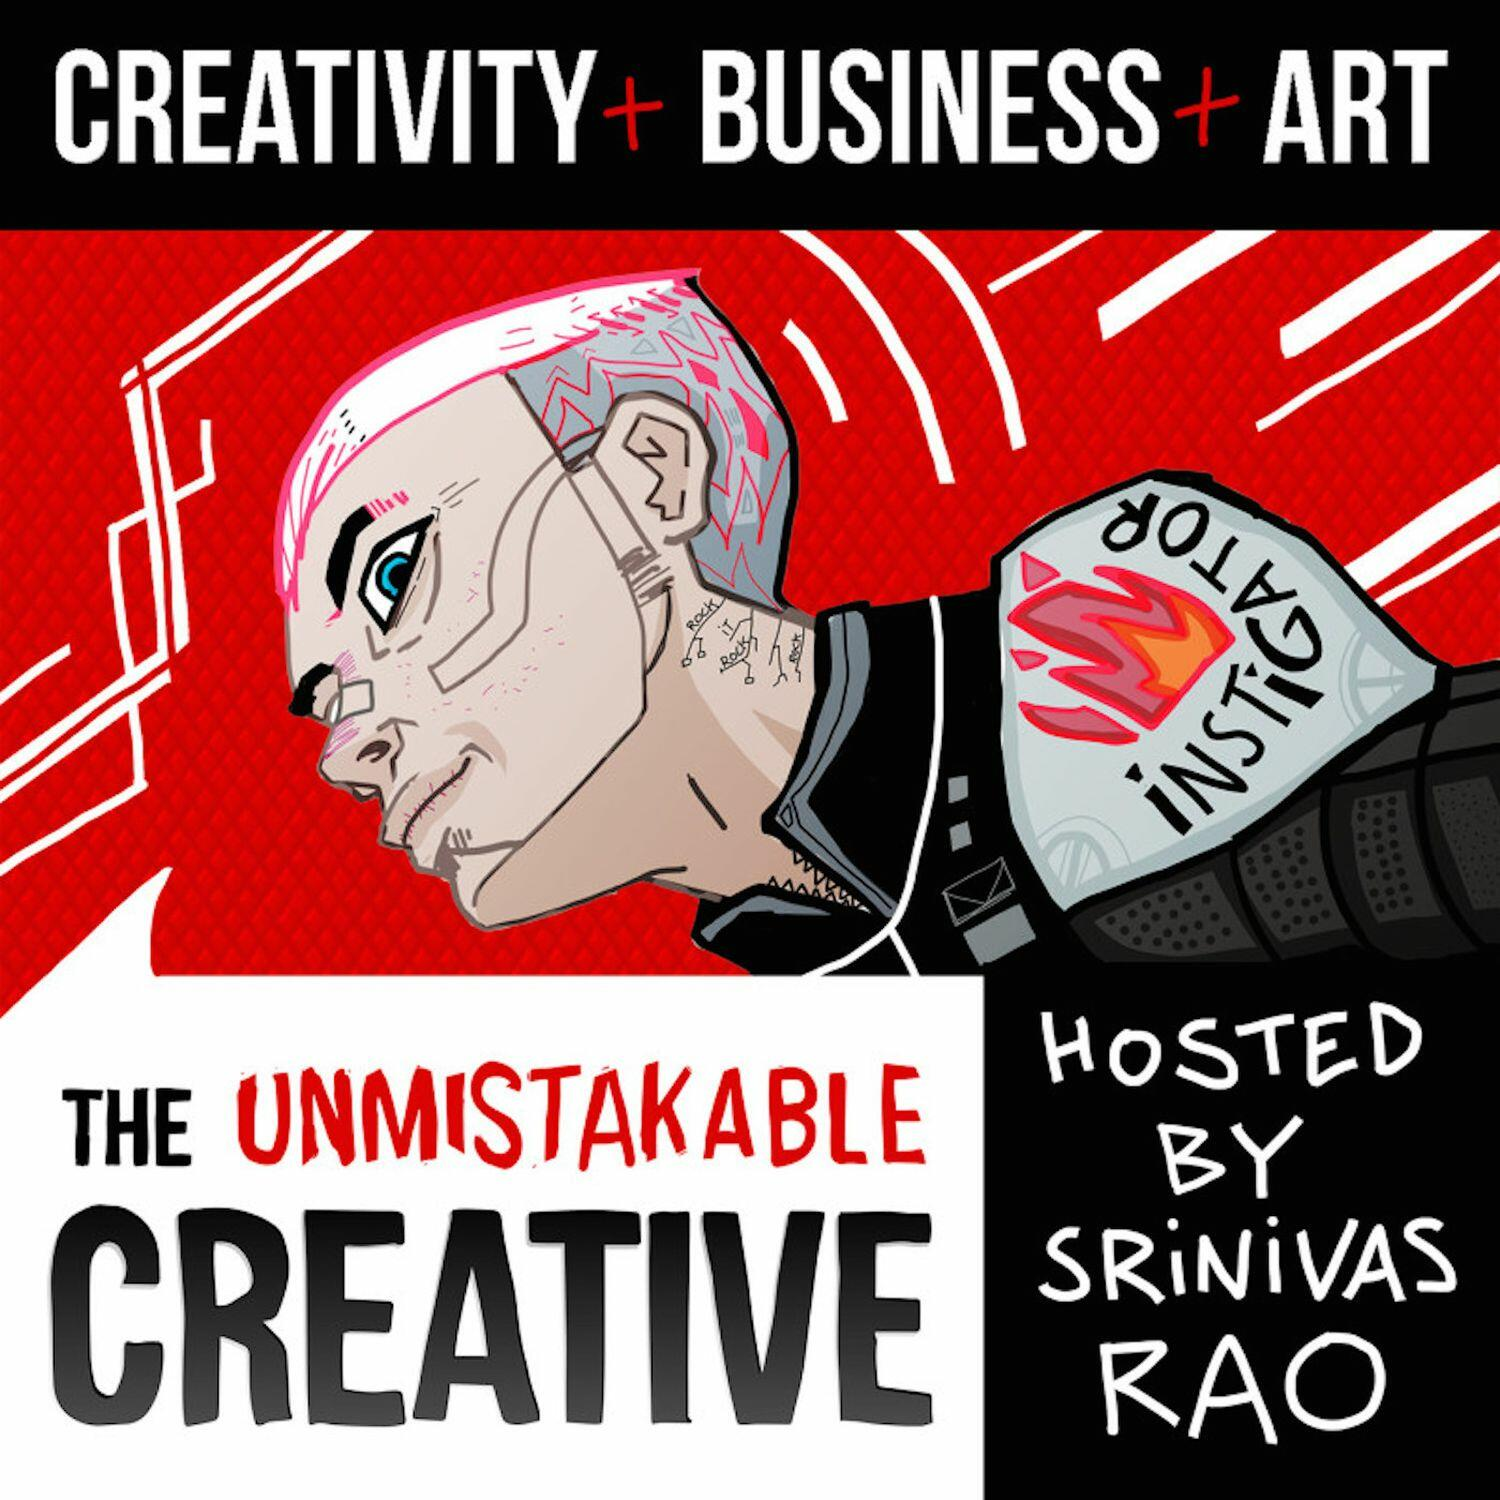 Listen to the The Unmistakable Creative Podcast Episode - Christine Comaford: Building Smart Tribes on iHeartRadio | iHeartRadio